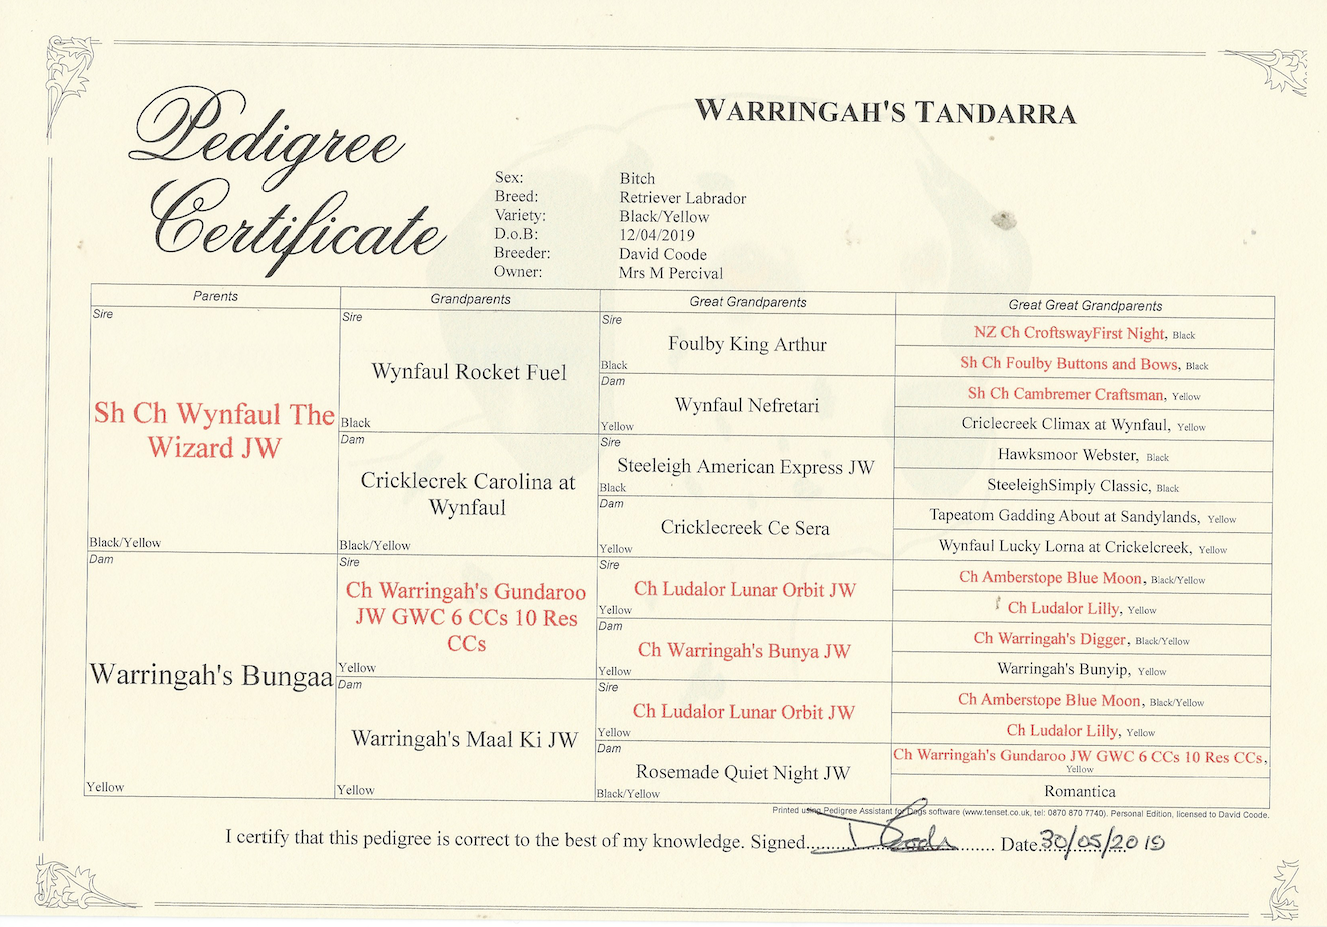 Warringah's Tandarri Pedigree